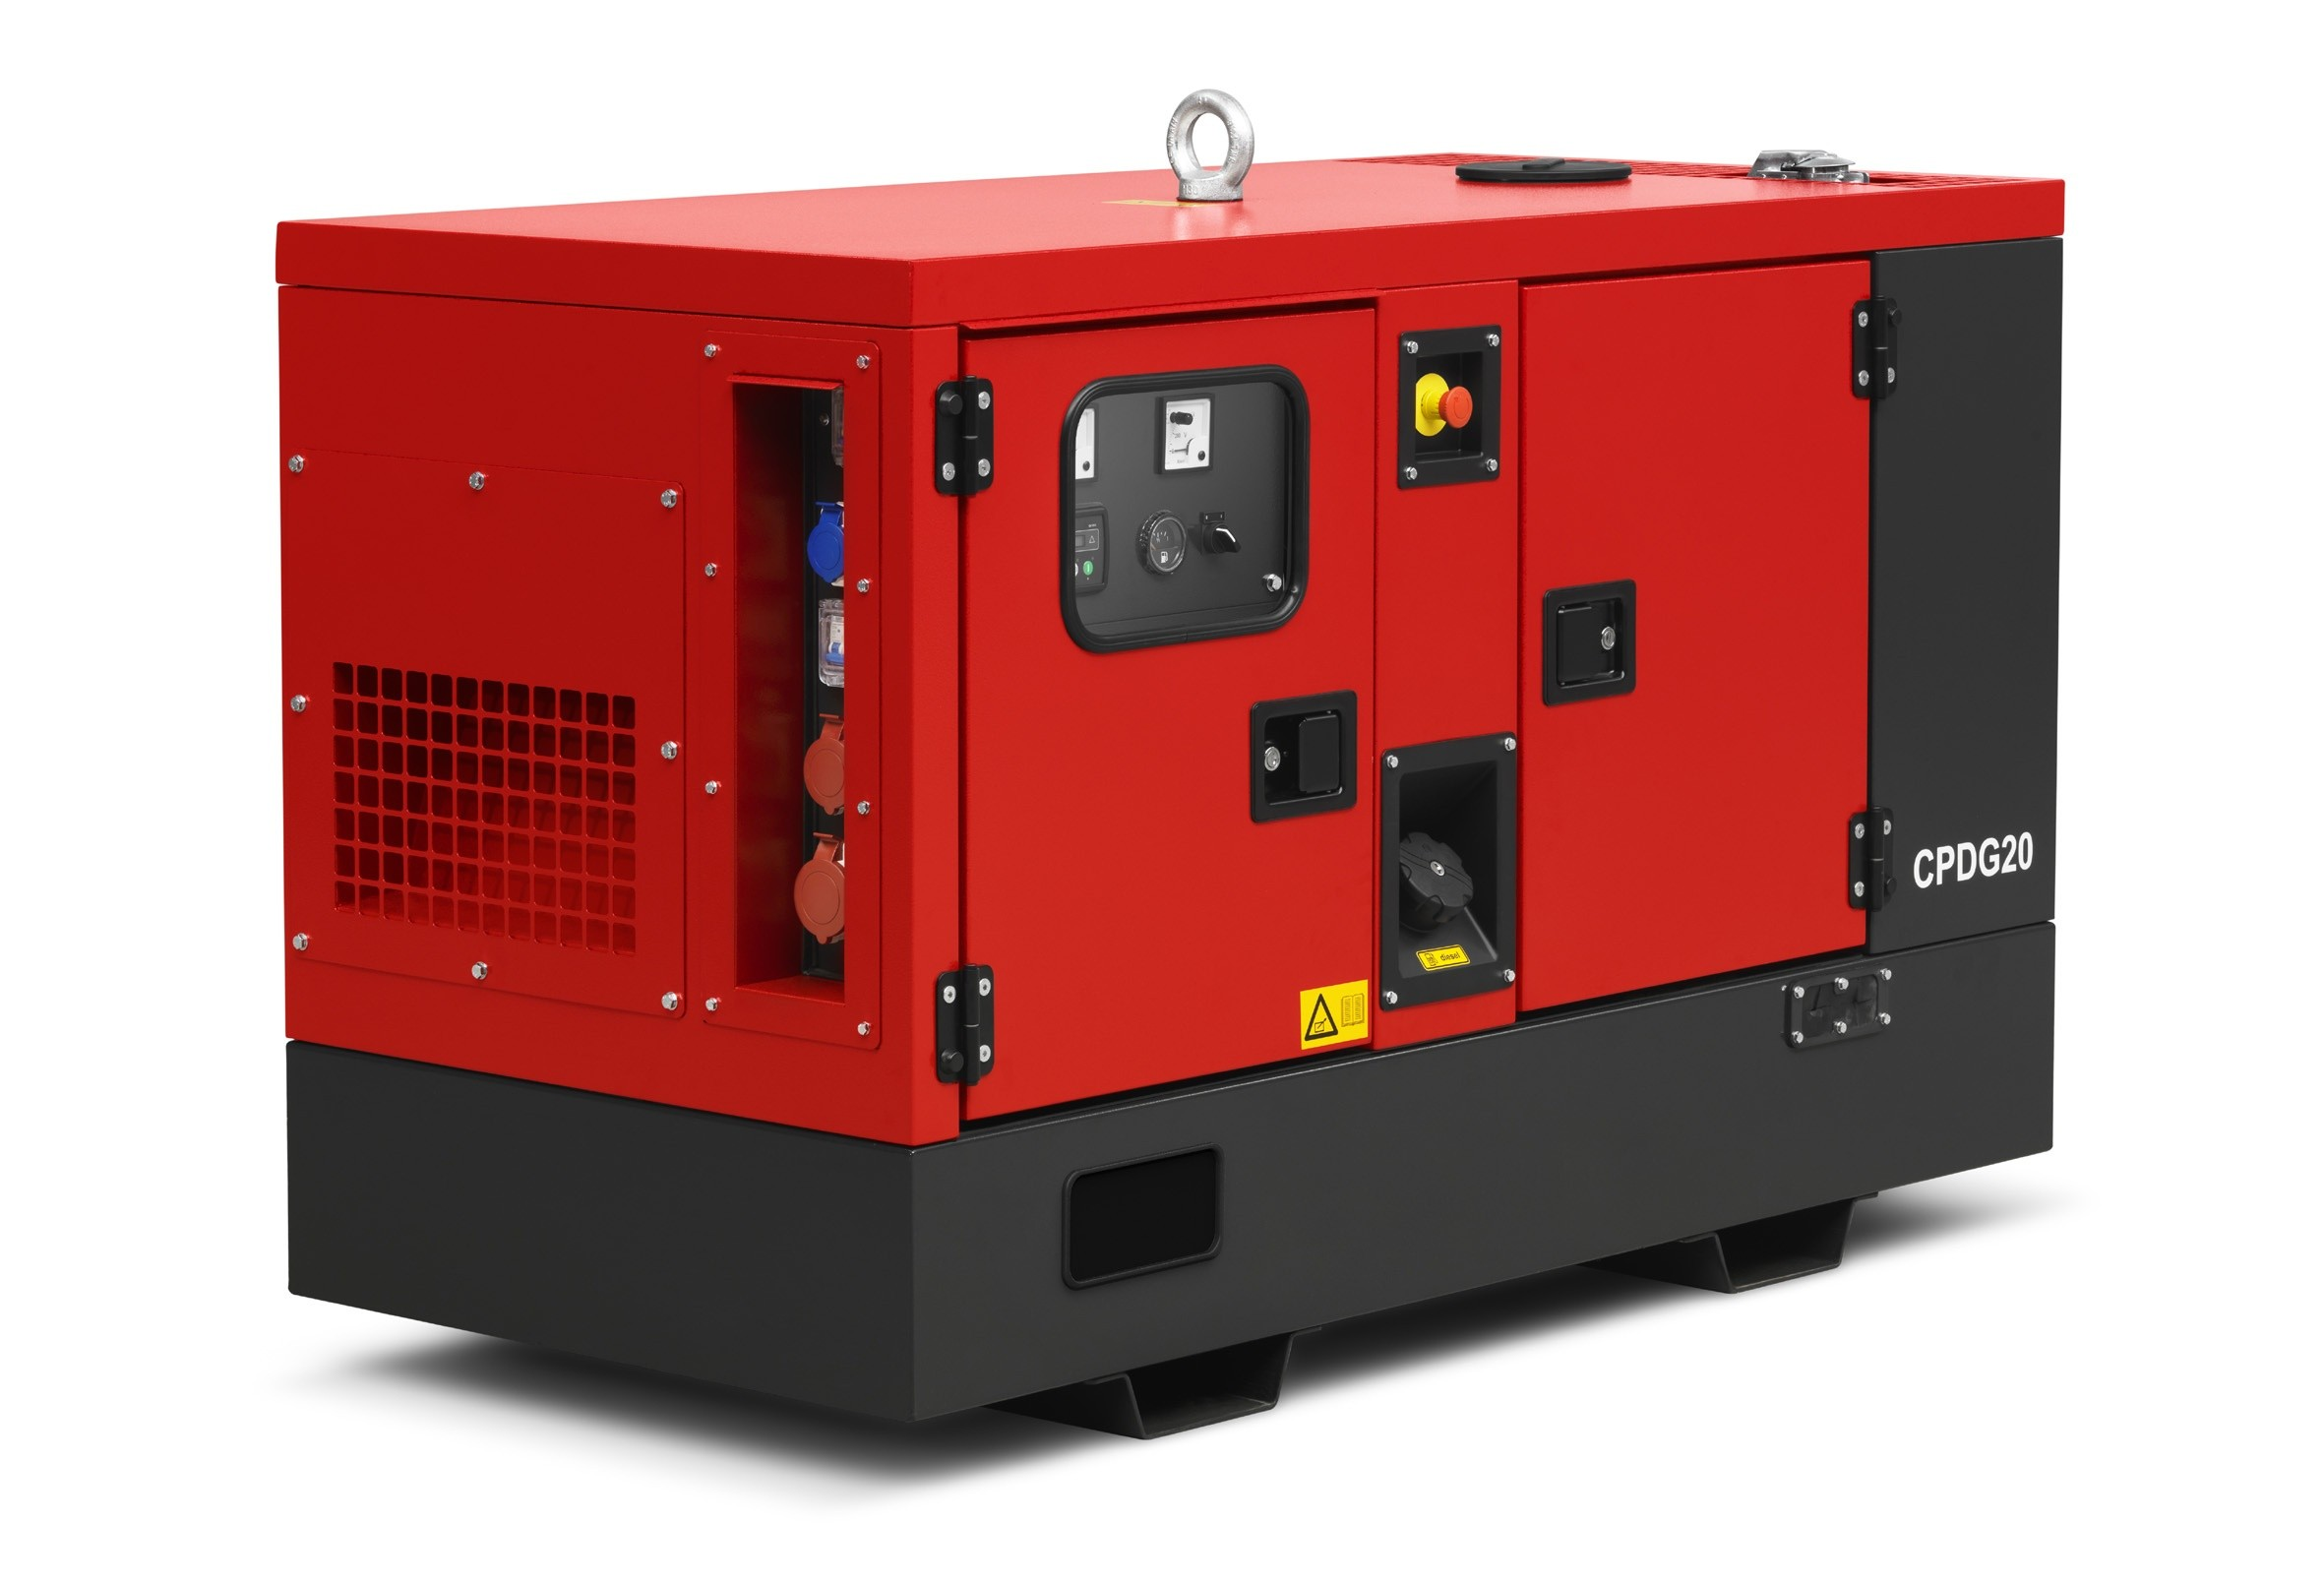 Chicago Pneumatic adds Generator options